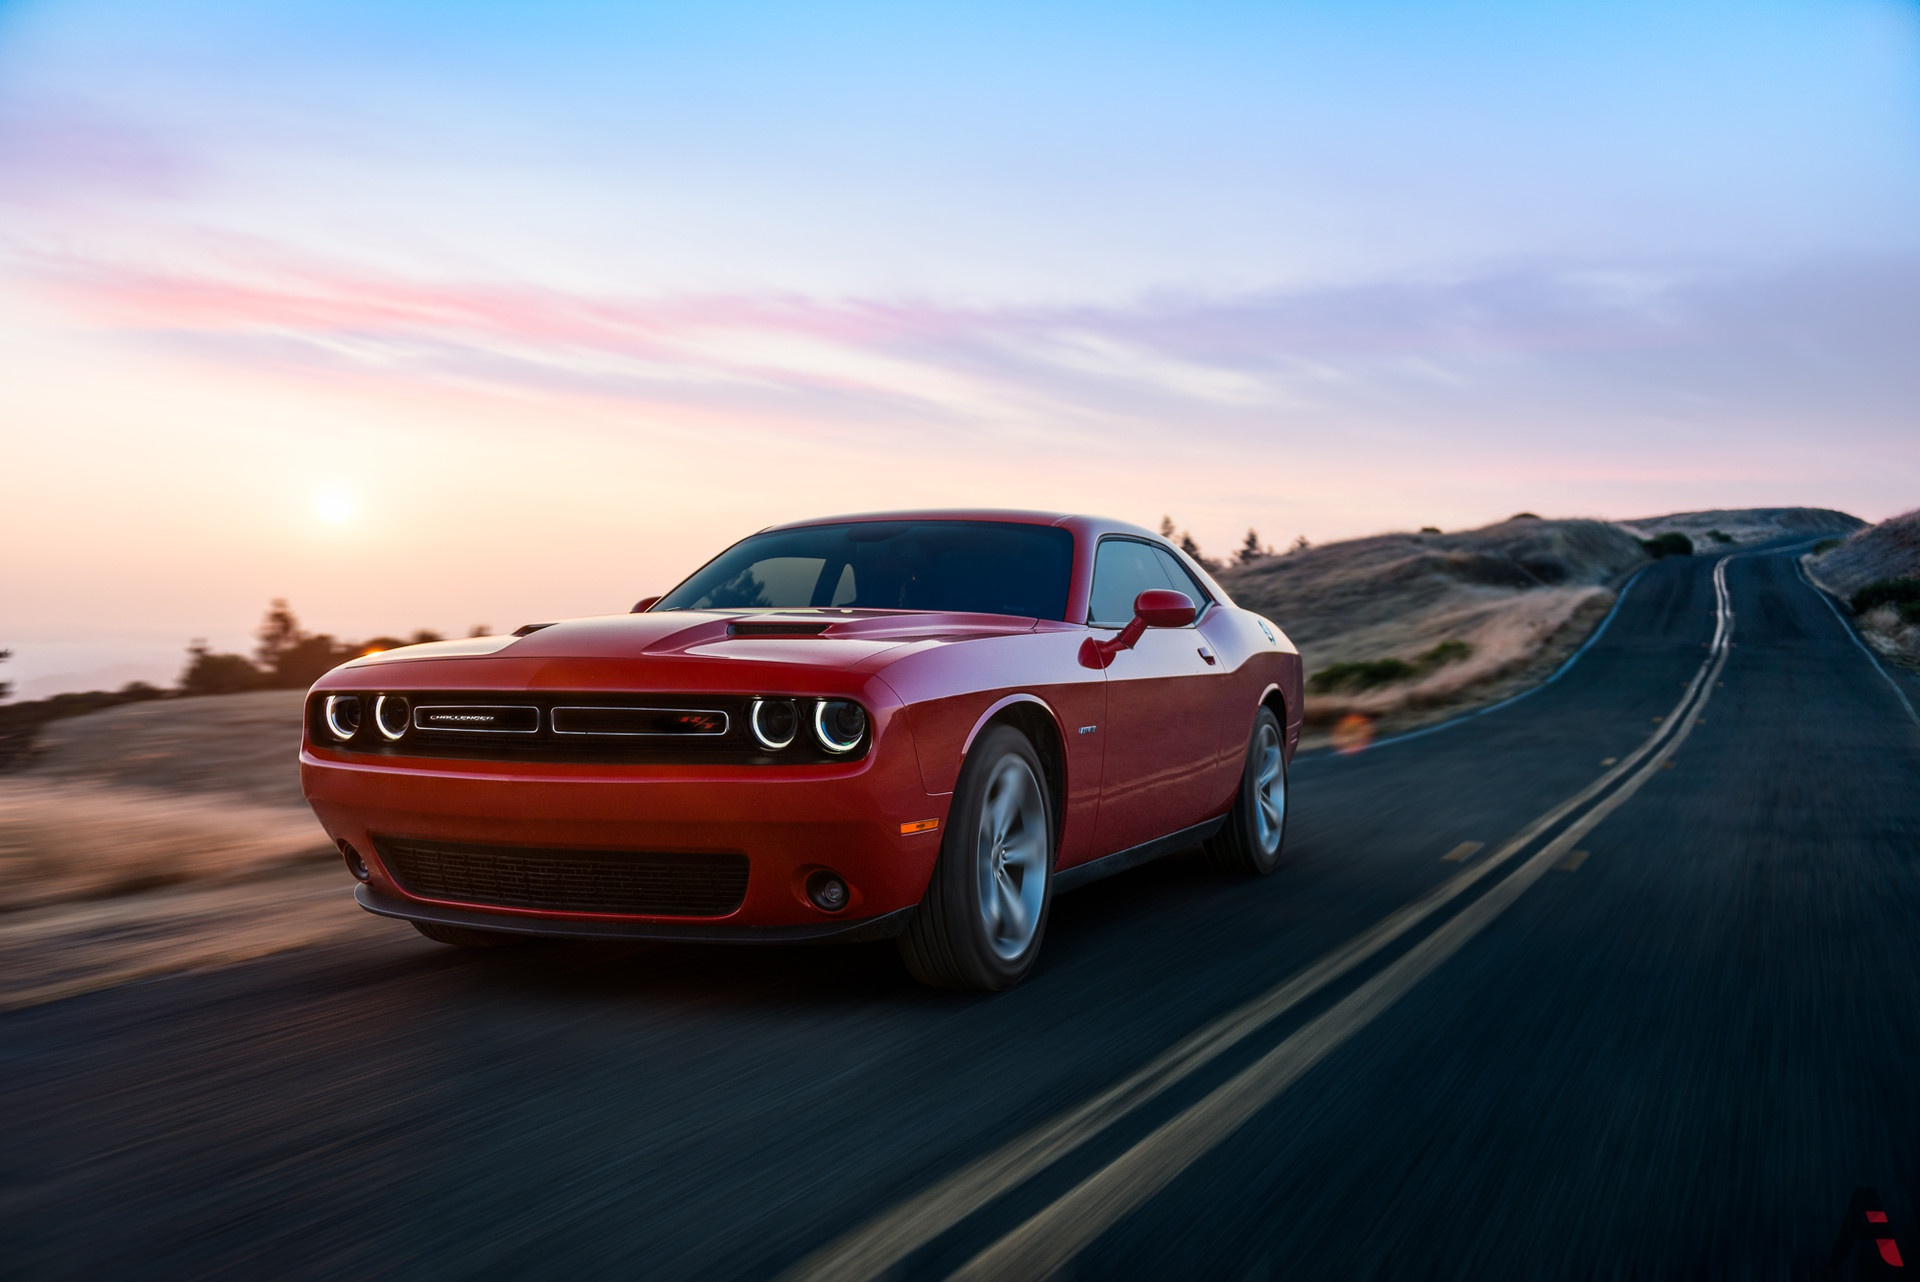 Car Dodge Dodge Challenger Muscle Car Red Car Vehicle 1920x1282